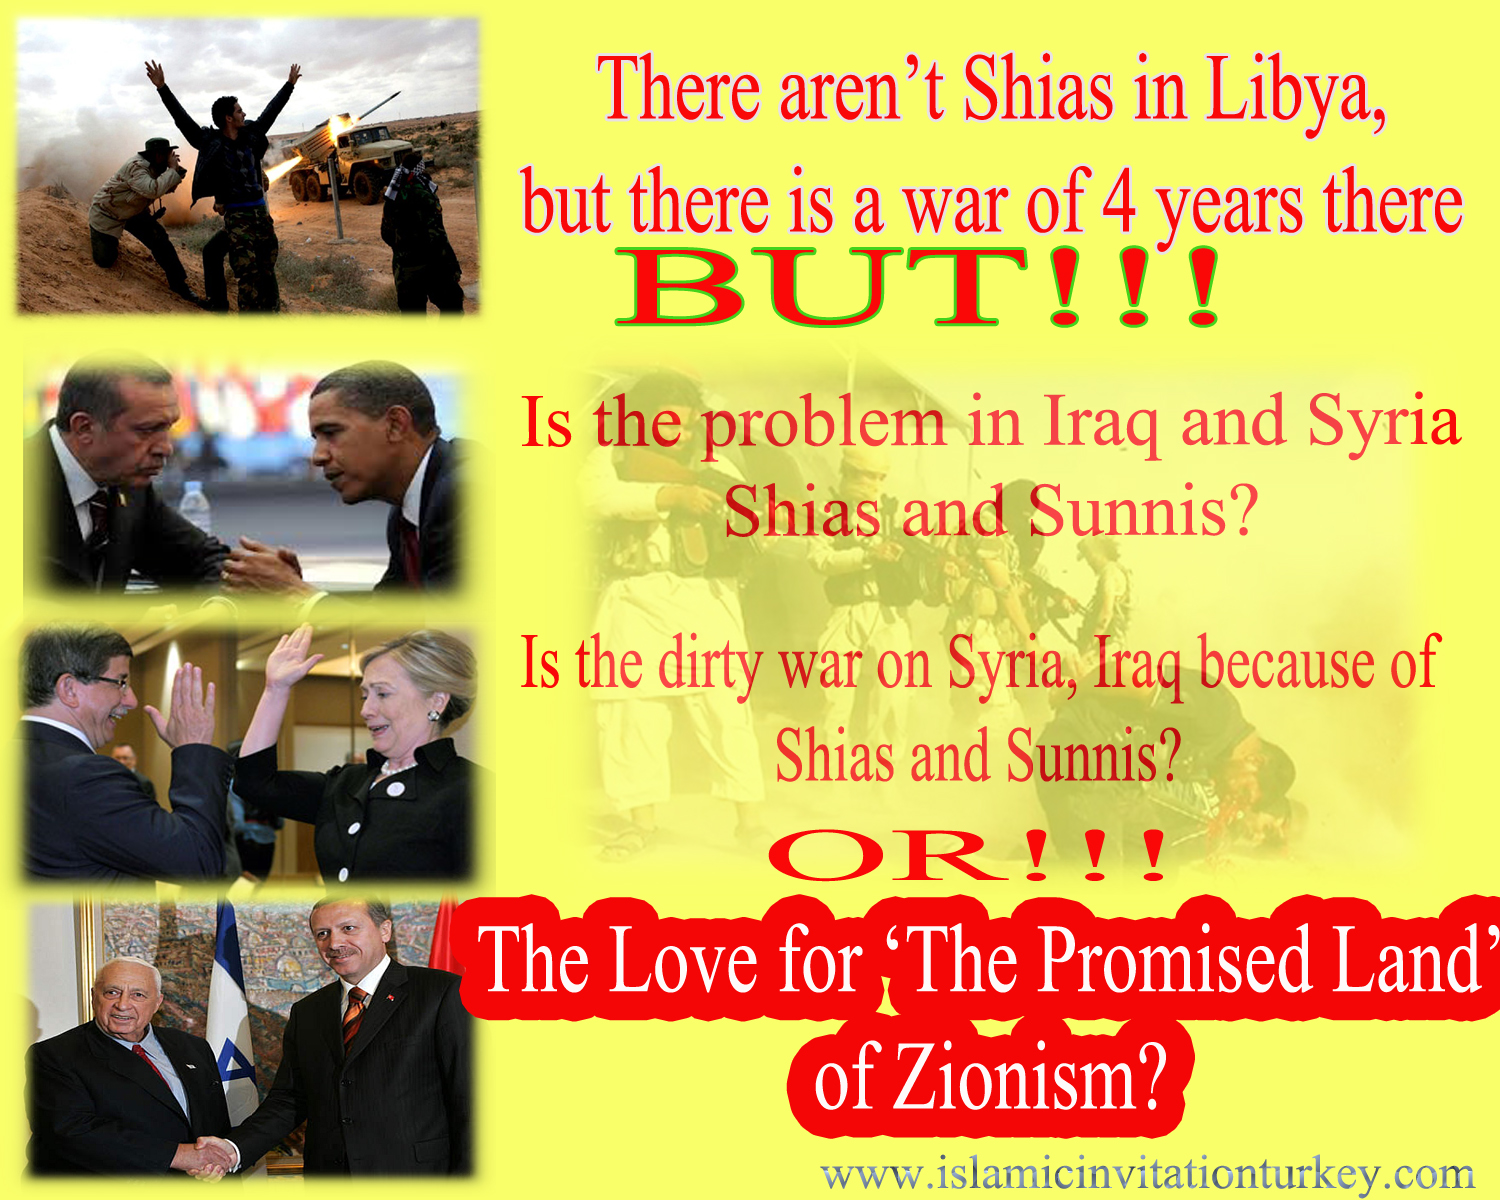 Photo of There aren't shias in Libya but there is a war of 4 years. What about Syria and Iraq?